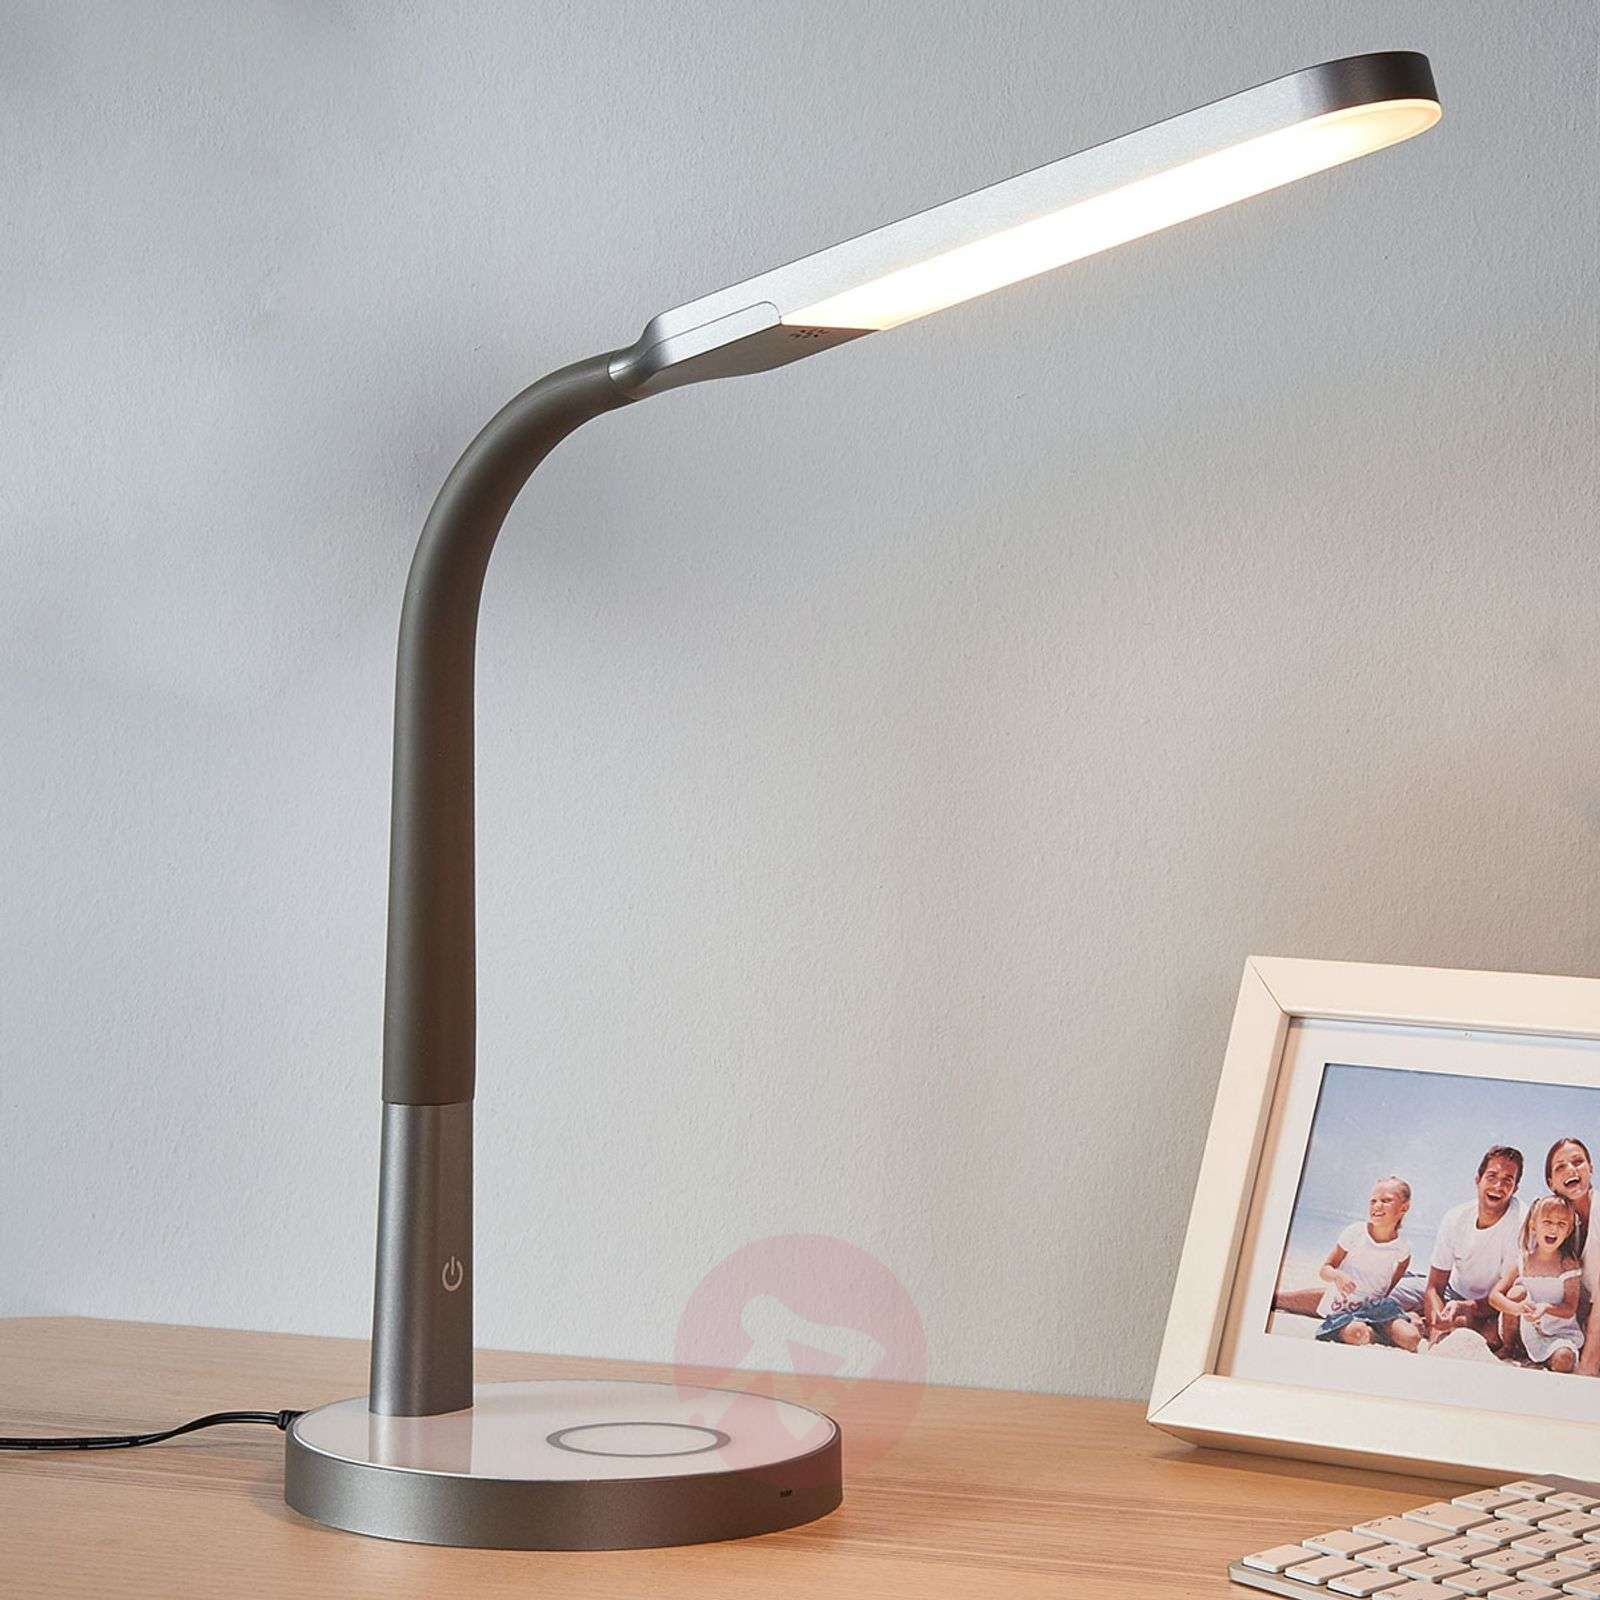 Bureau led connecté technologic gris et blanc promotions meuble